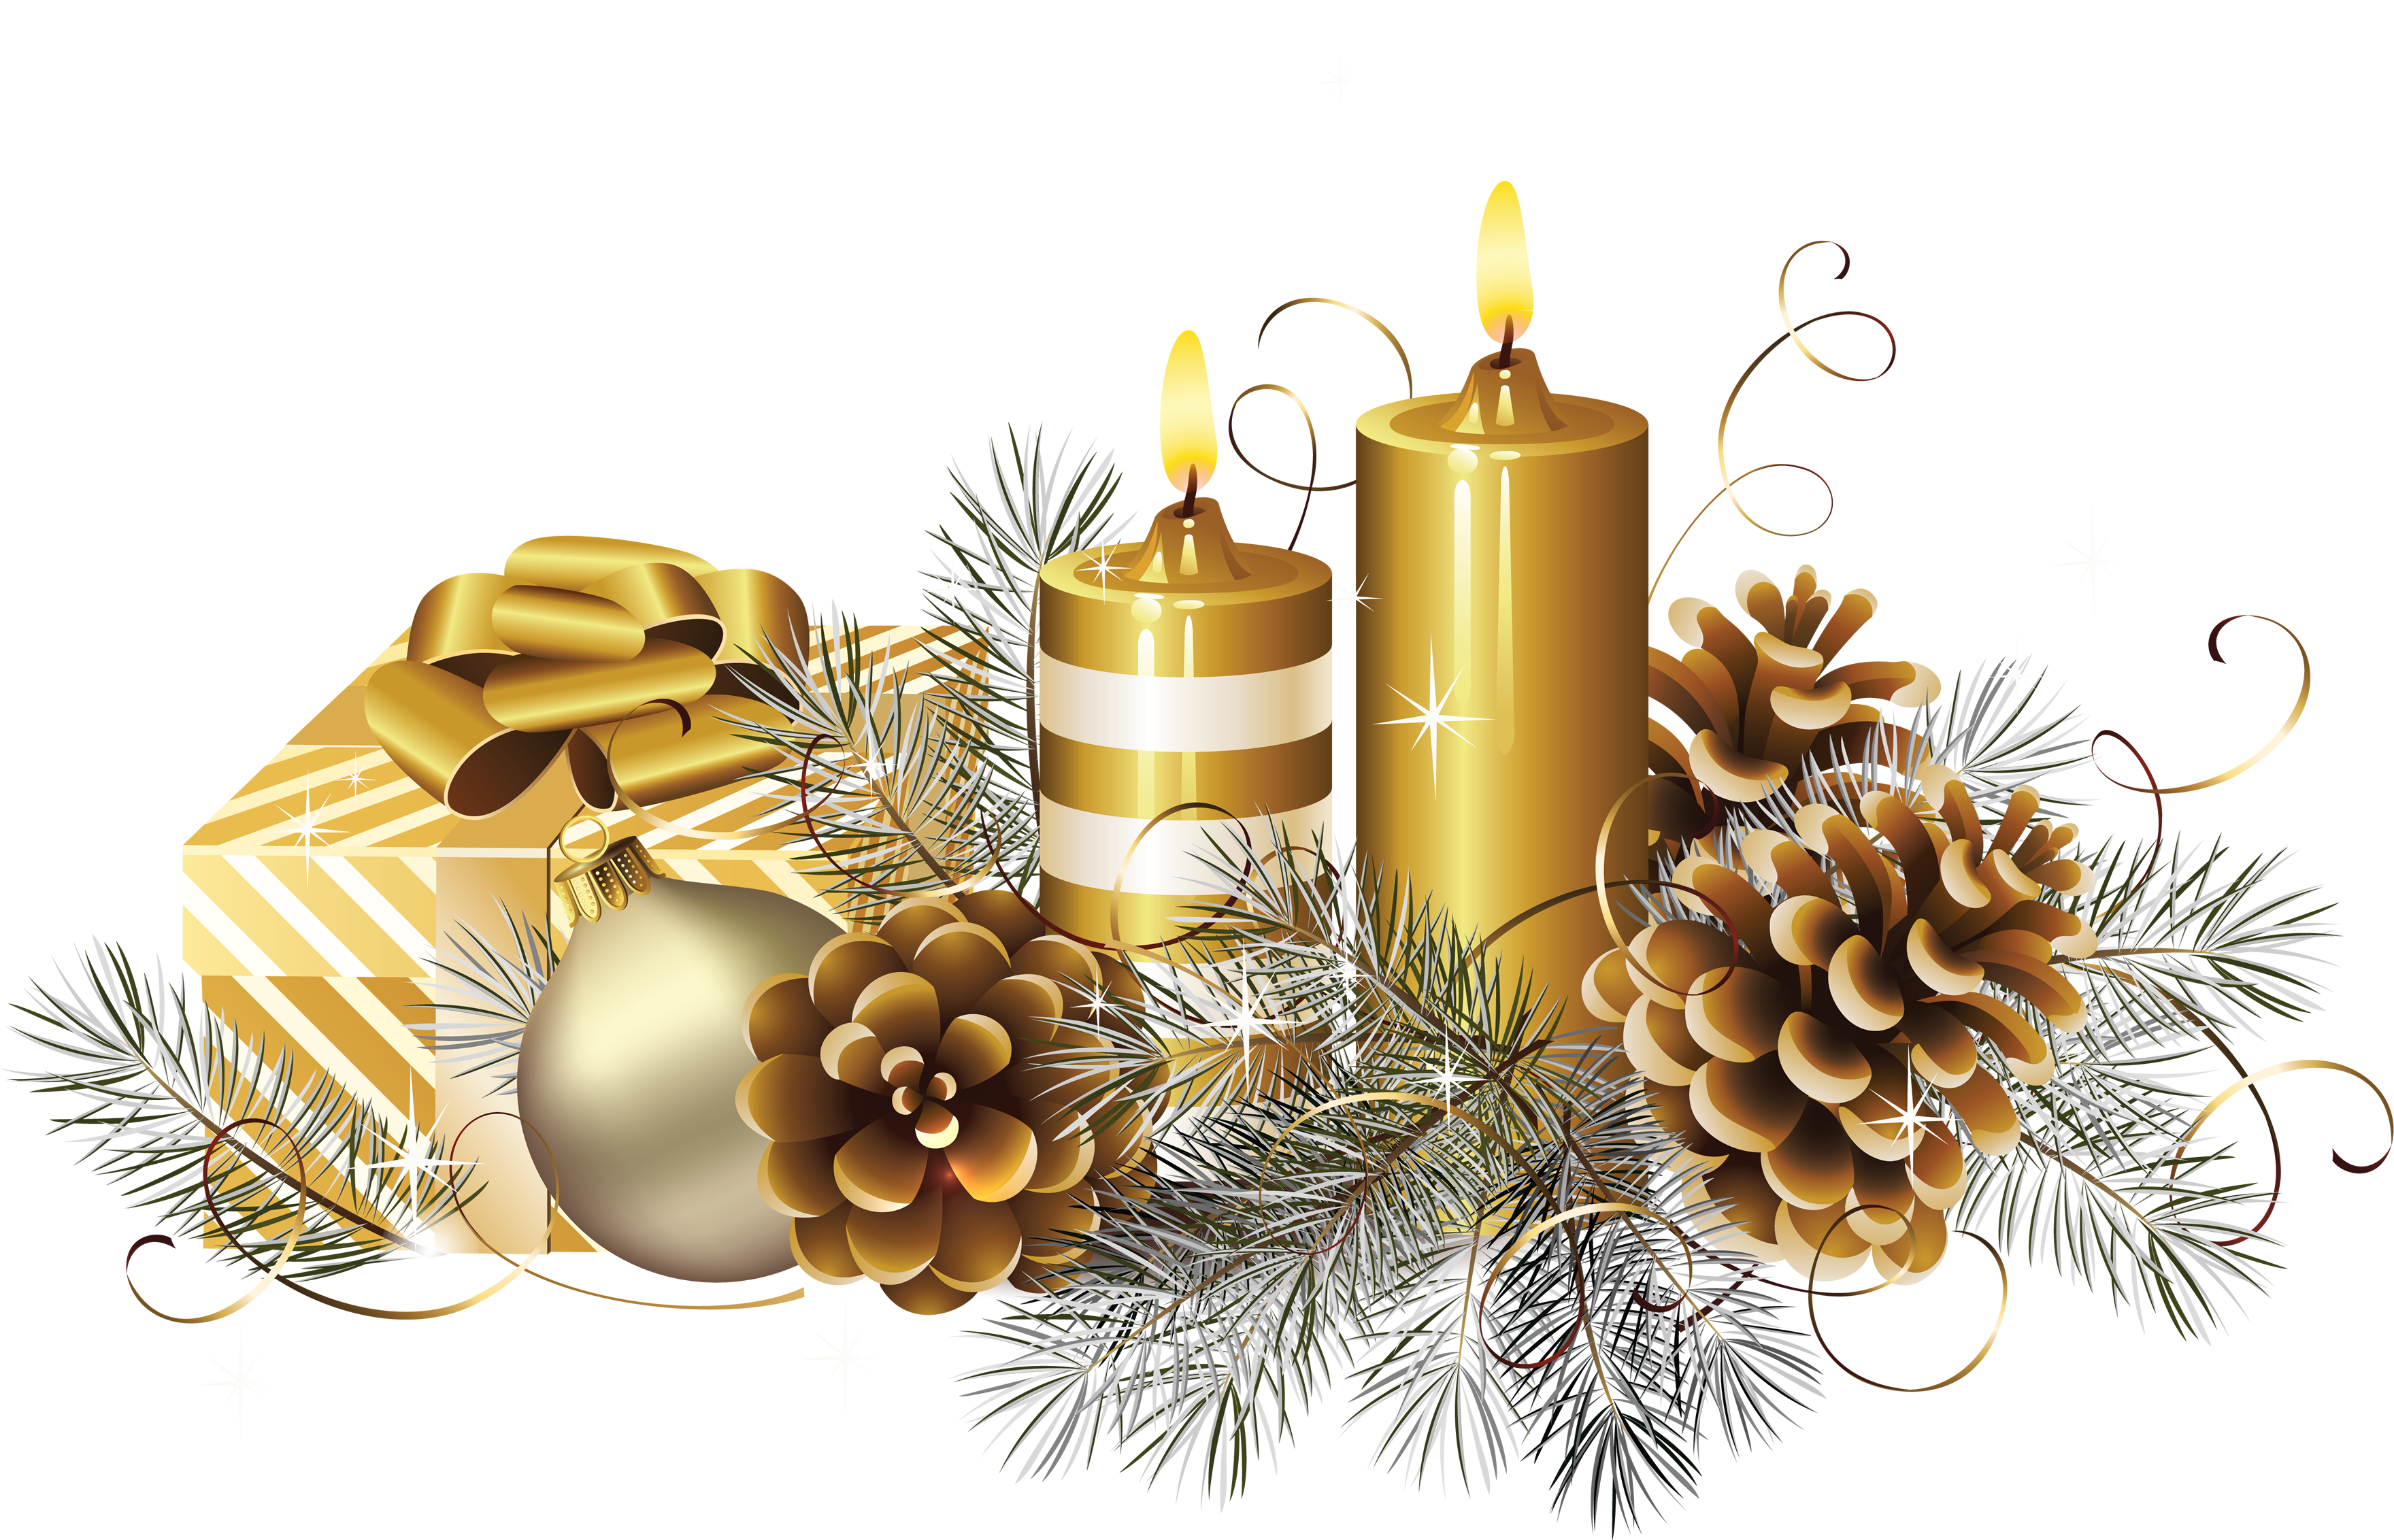 Christmas s png image. Clipart candle holiday candle